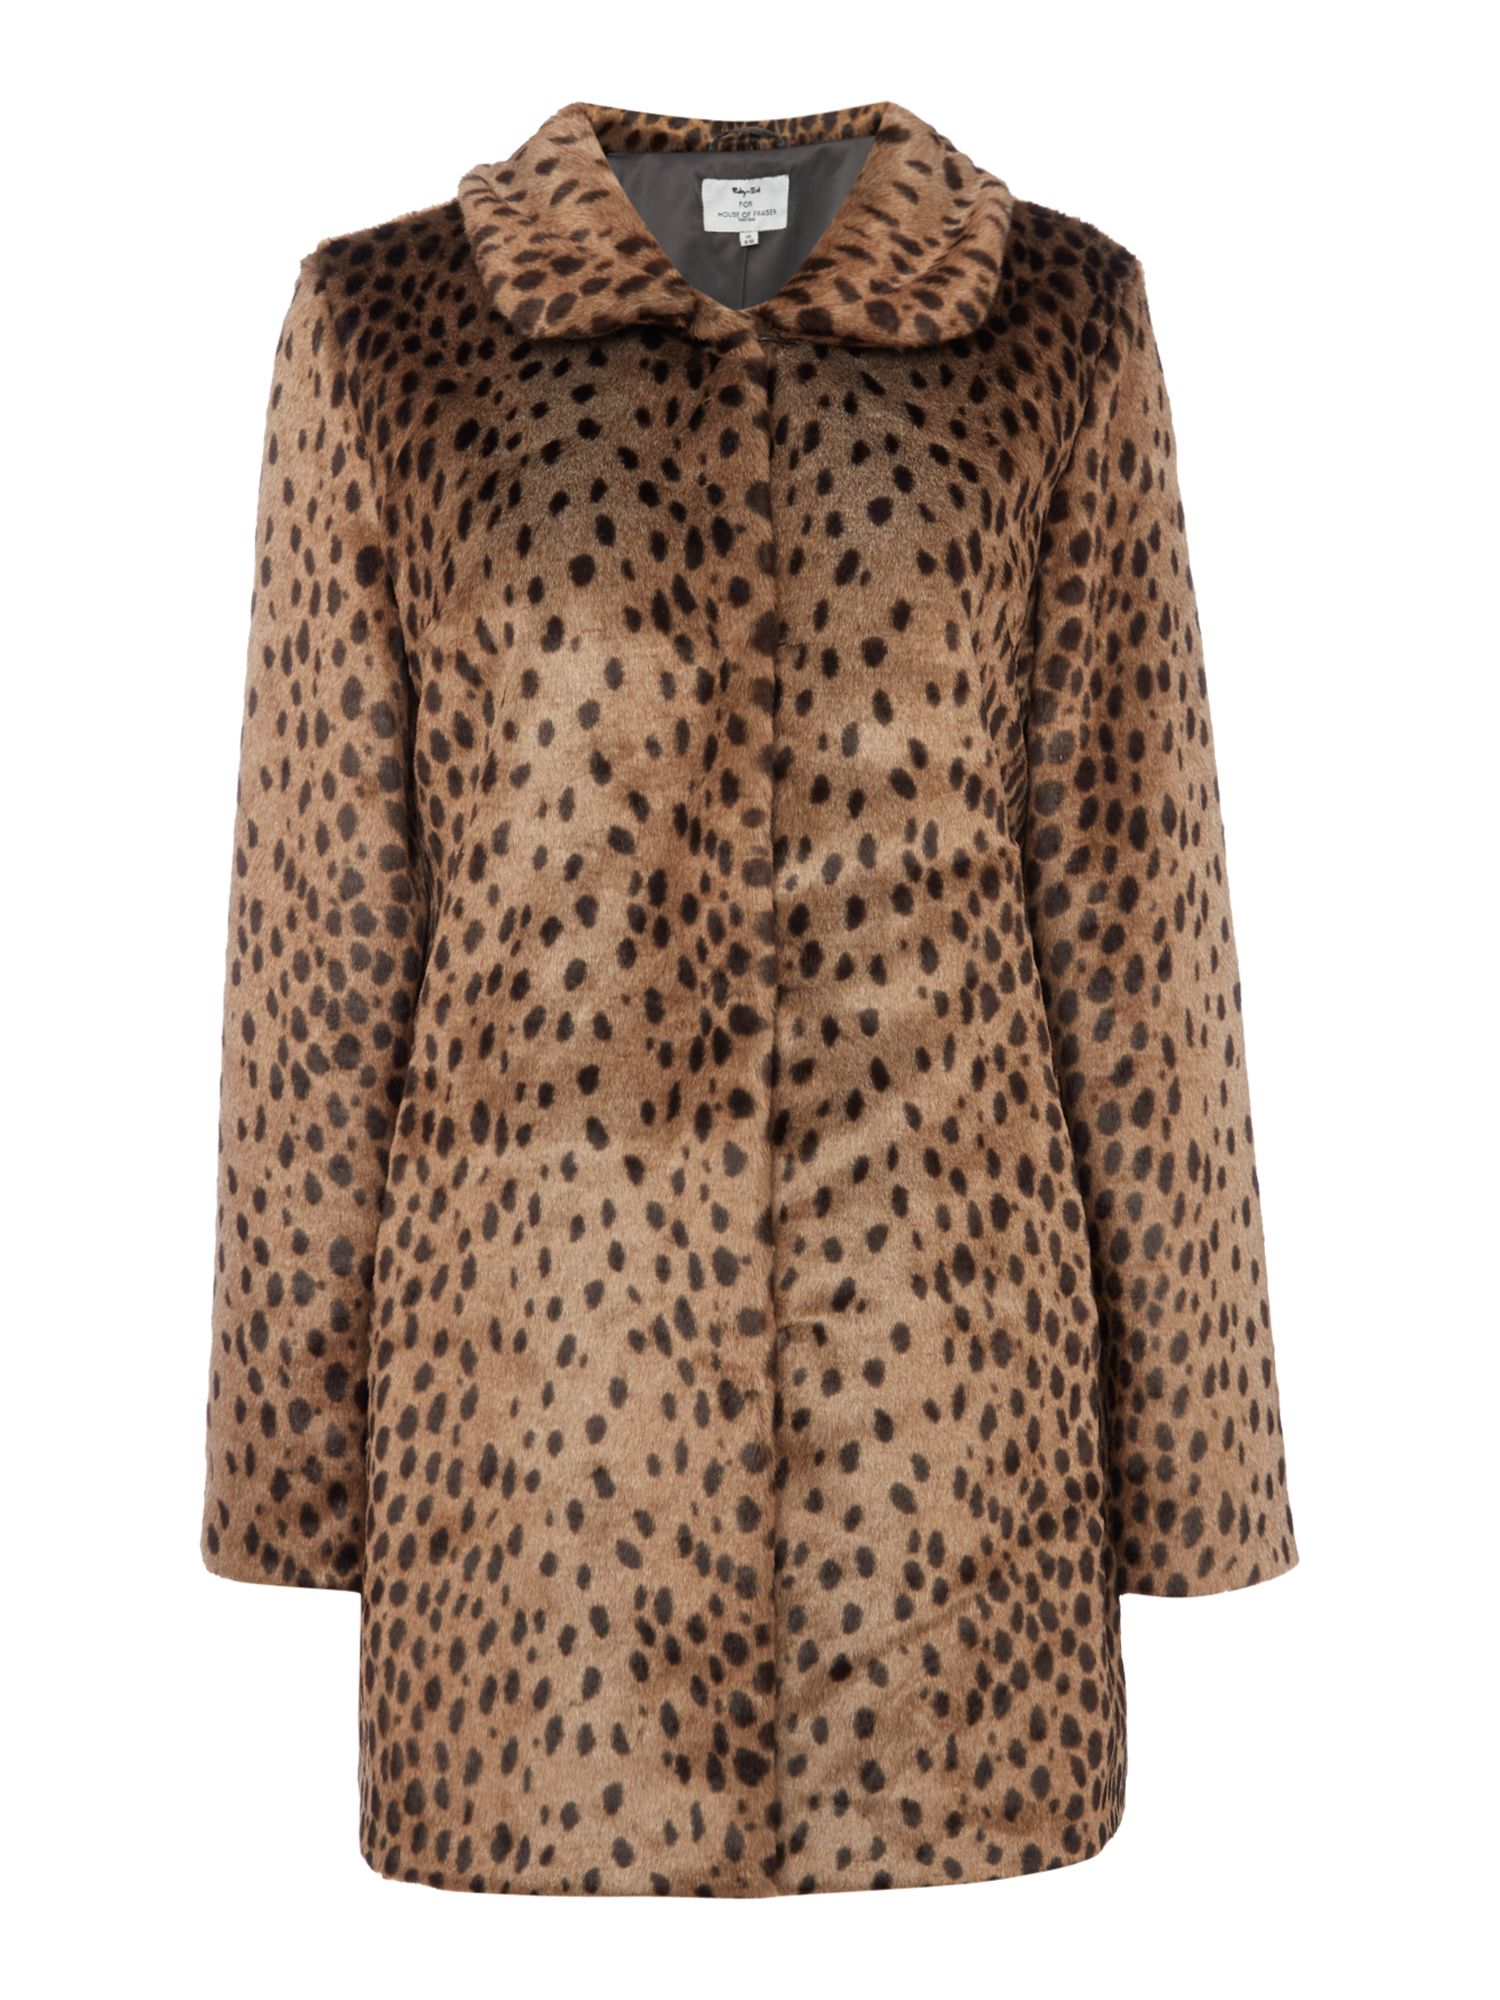 Ruby + Ed Faux Fur Collar Coat, Leopard